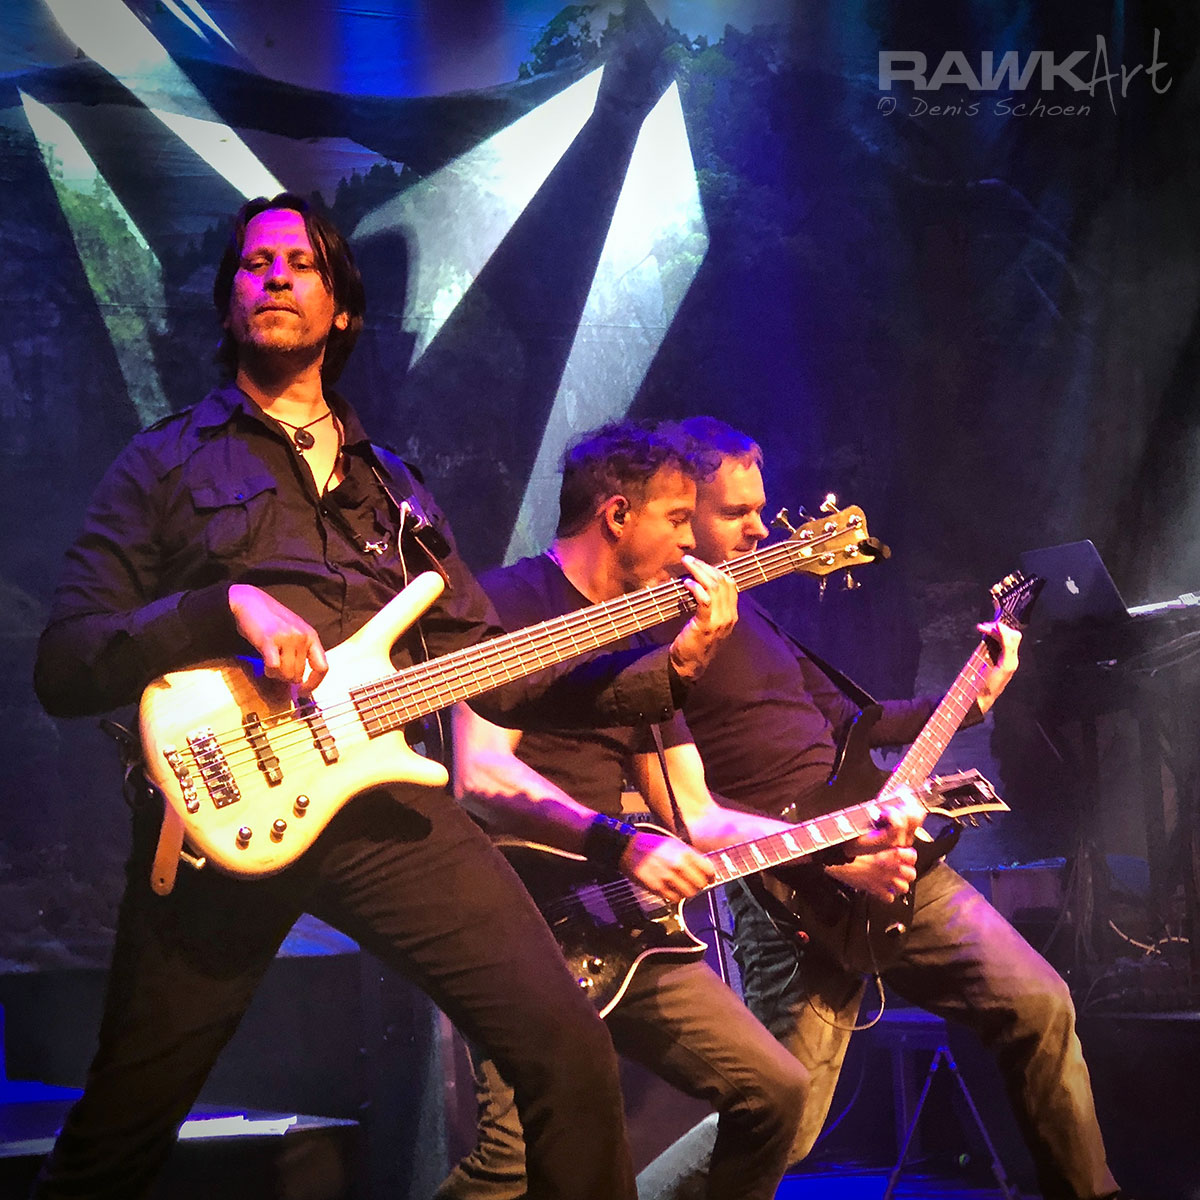 Threshold - De Boerderij, Zoetermeer, Netherlands 2017, Legends of the Shires 2017 Tour